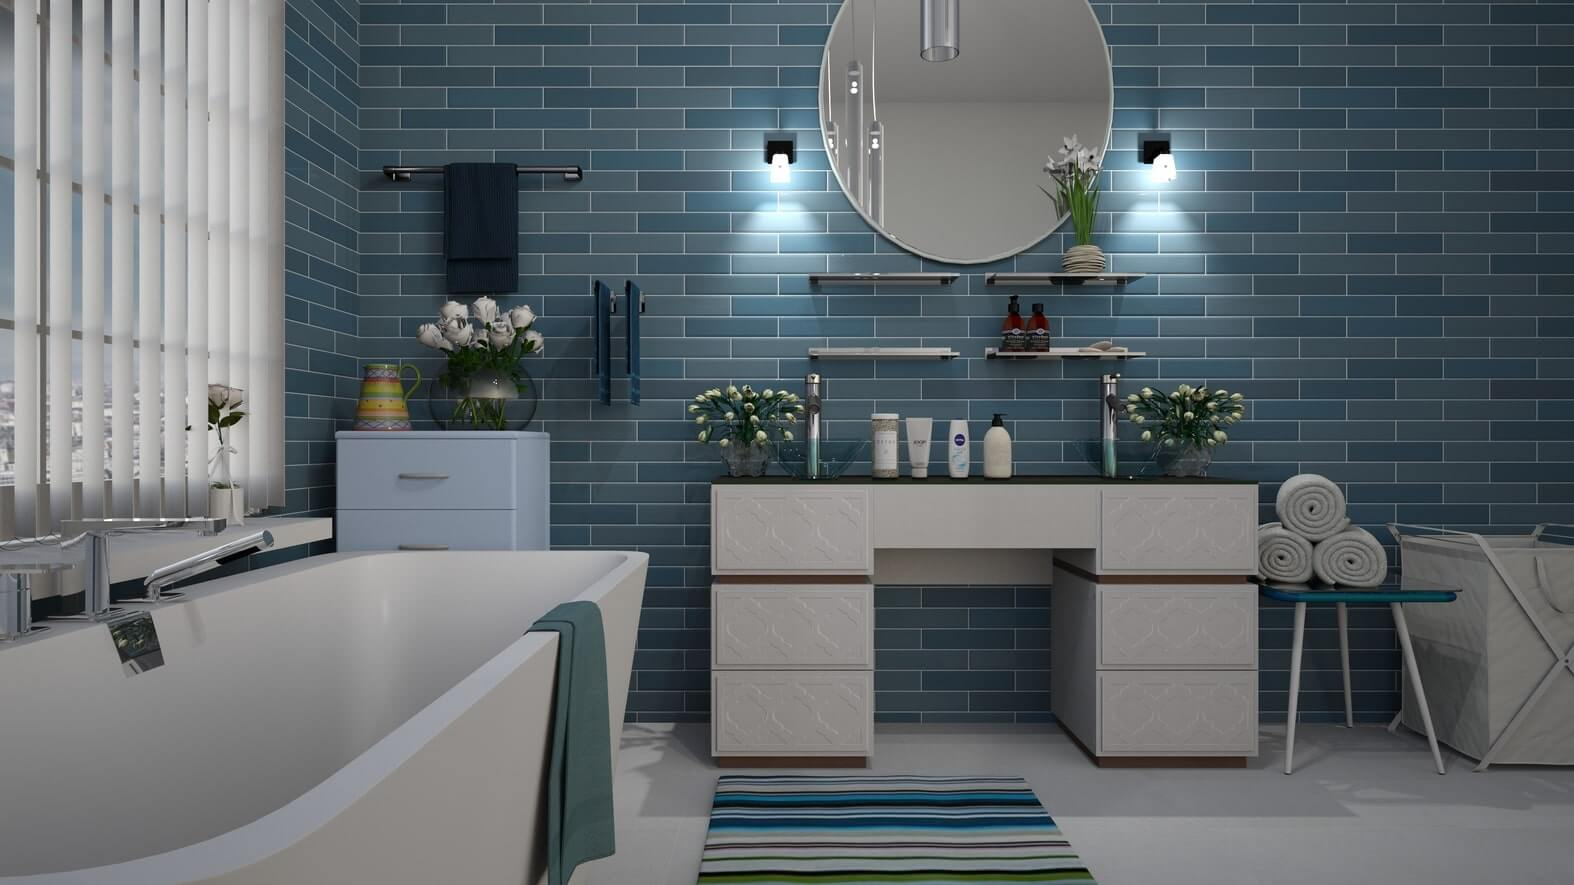 blue tile new bathtub by remodeling contractor